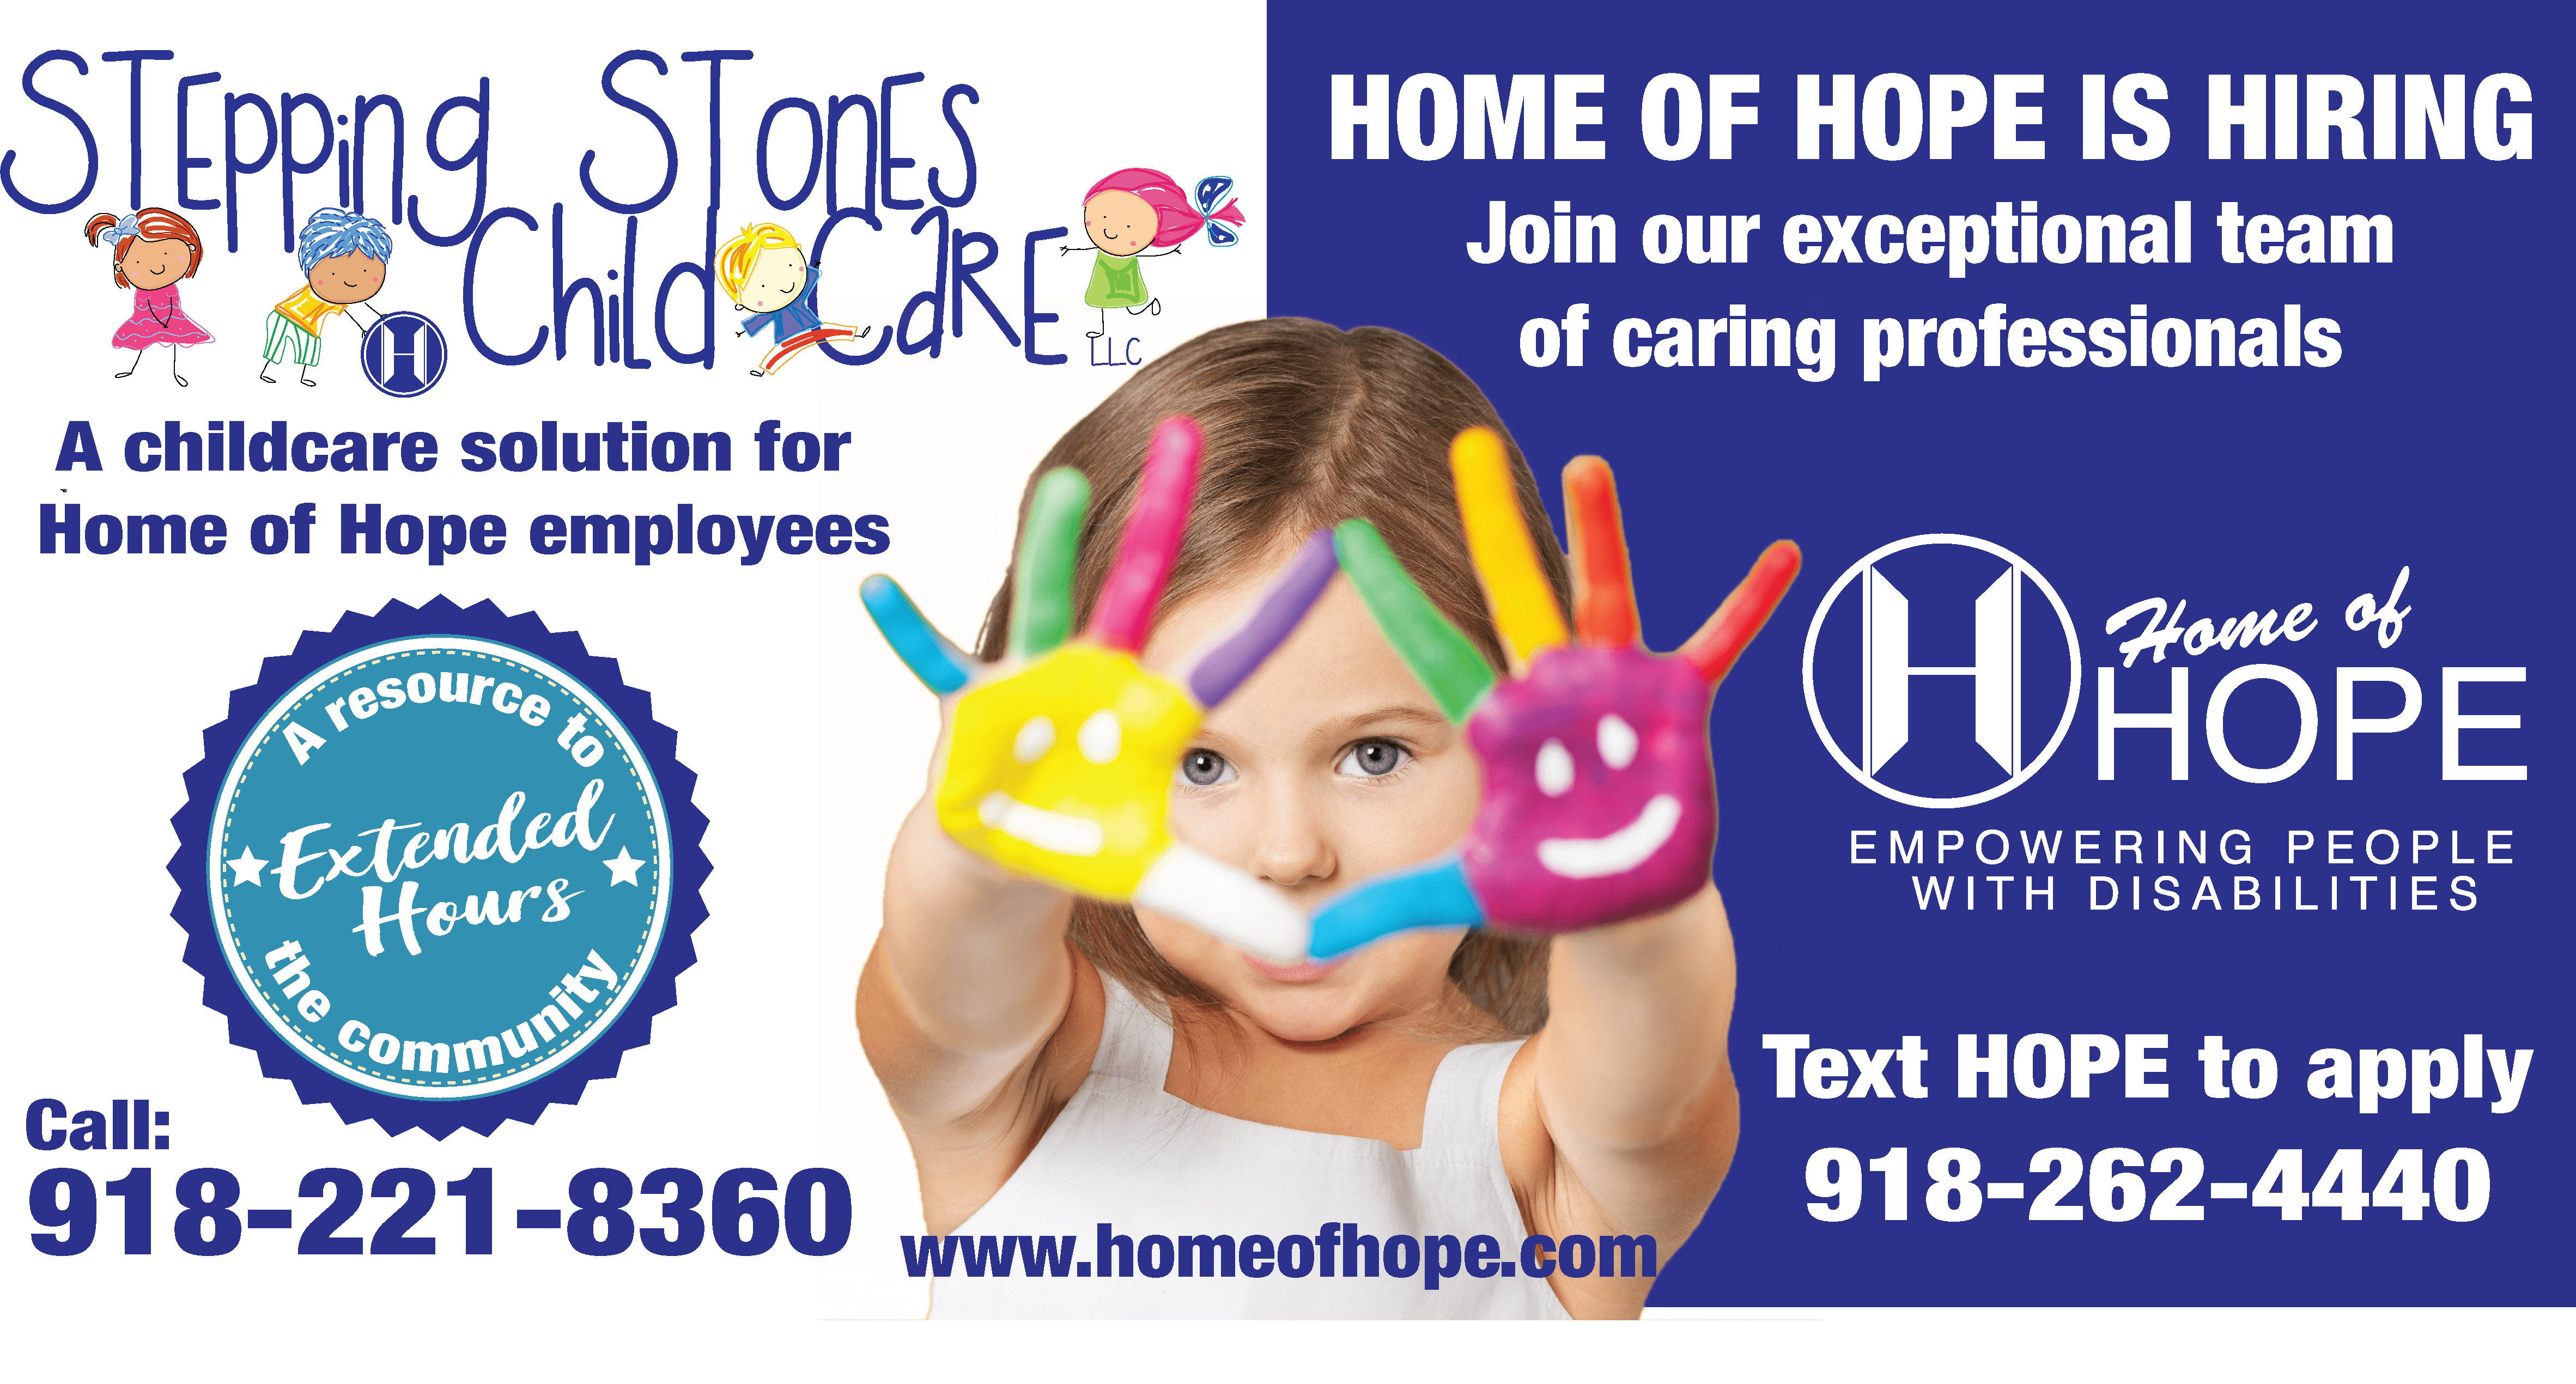 Home of Hope Stepping Stones Childcare